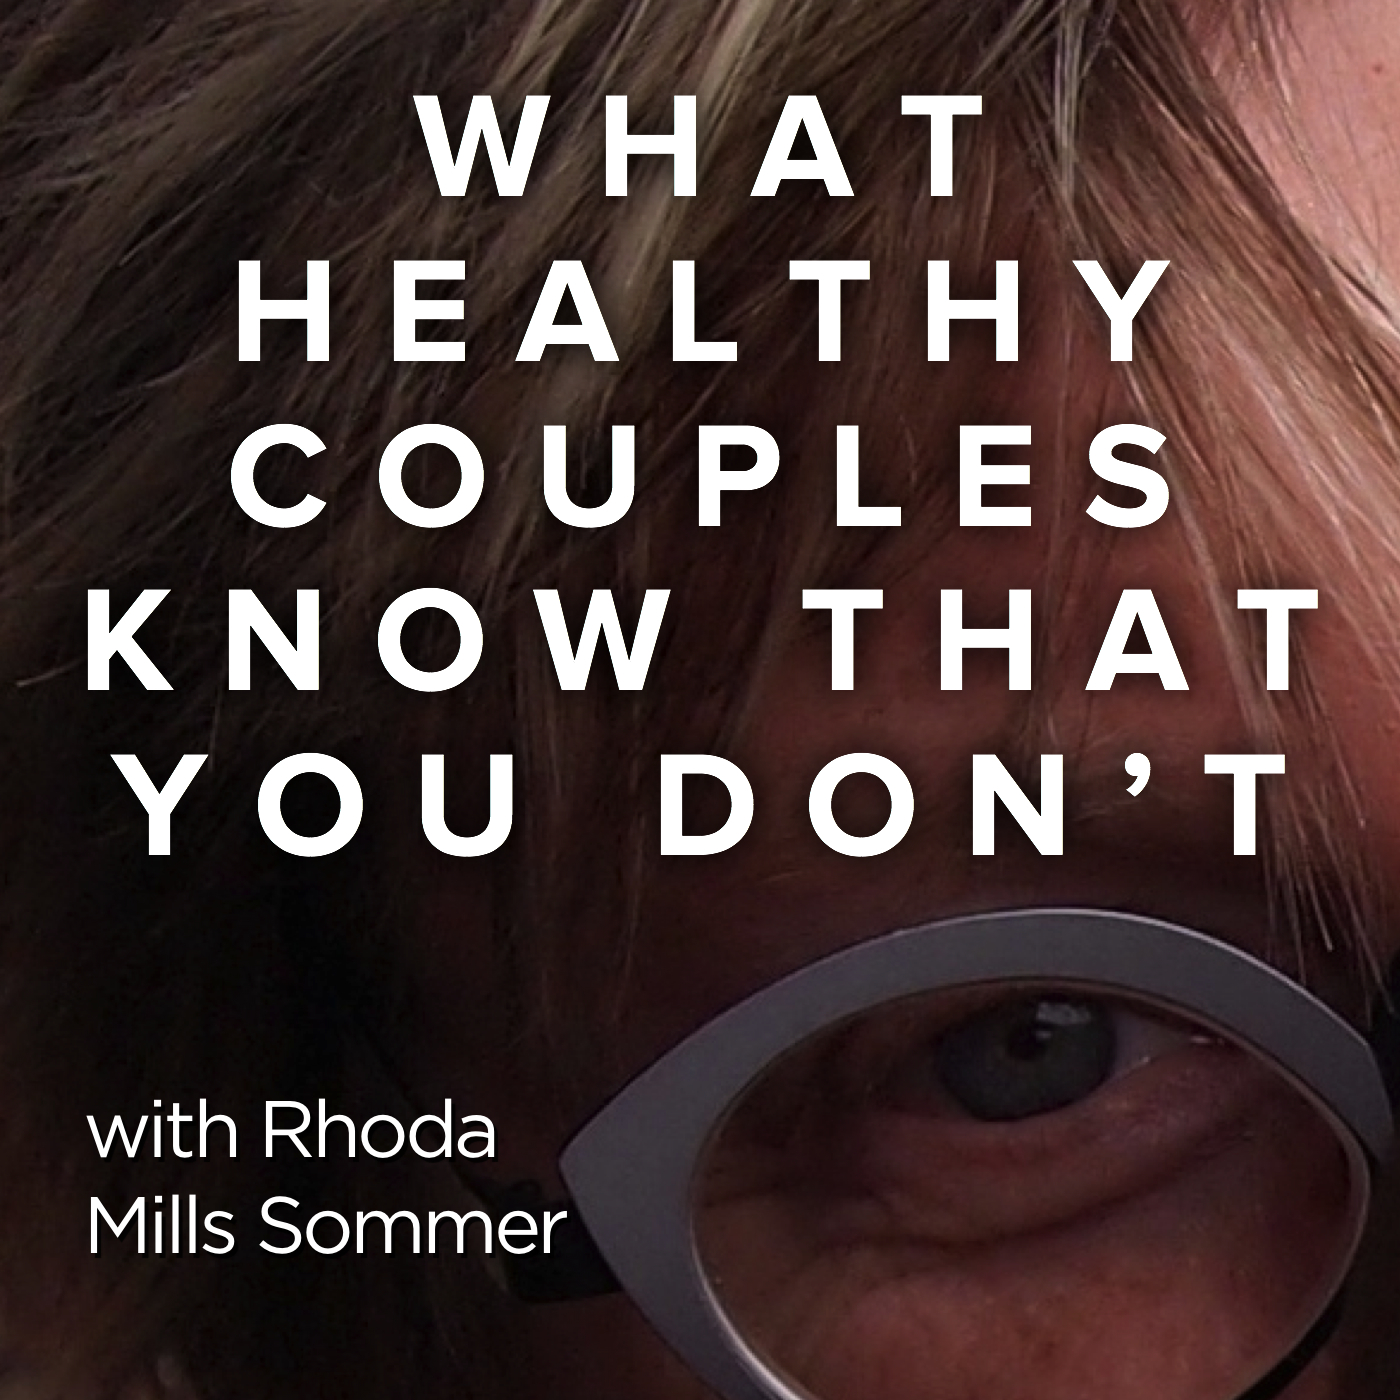 What Healthy Couples Know That You Don't - Relationships Require We Recongnize Our Own Dark Side